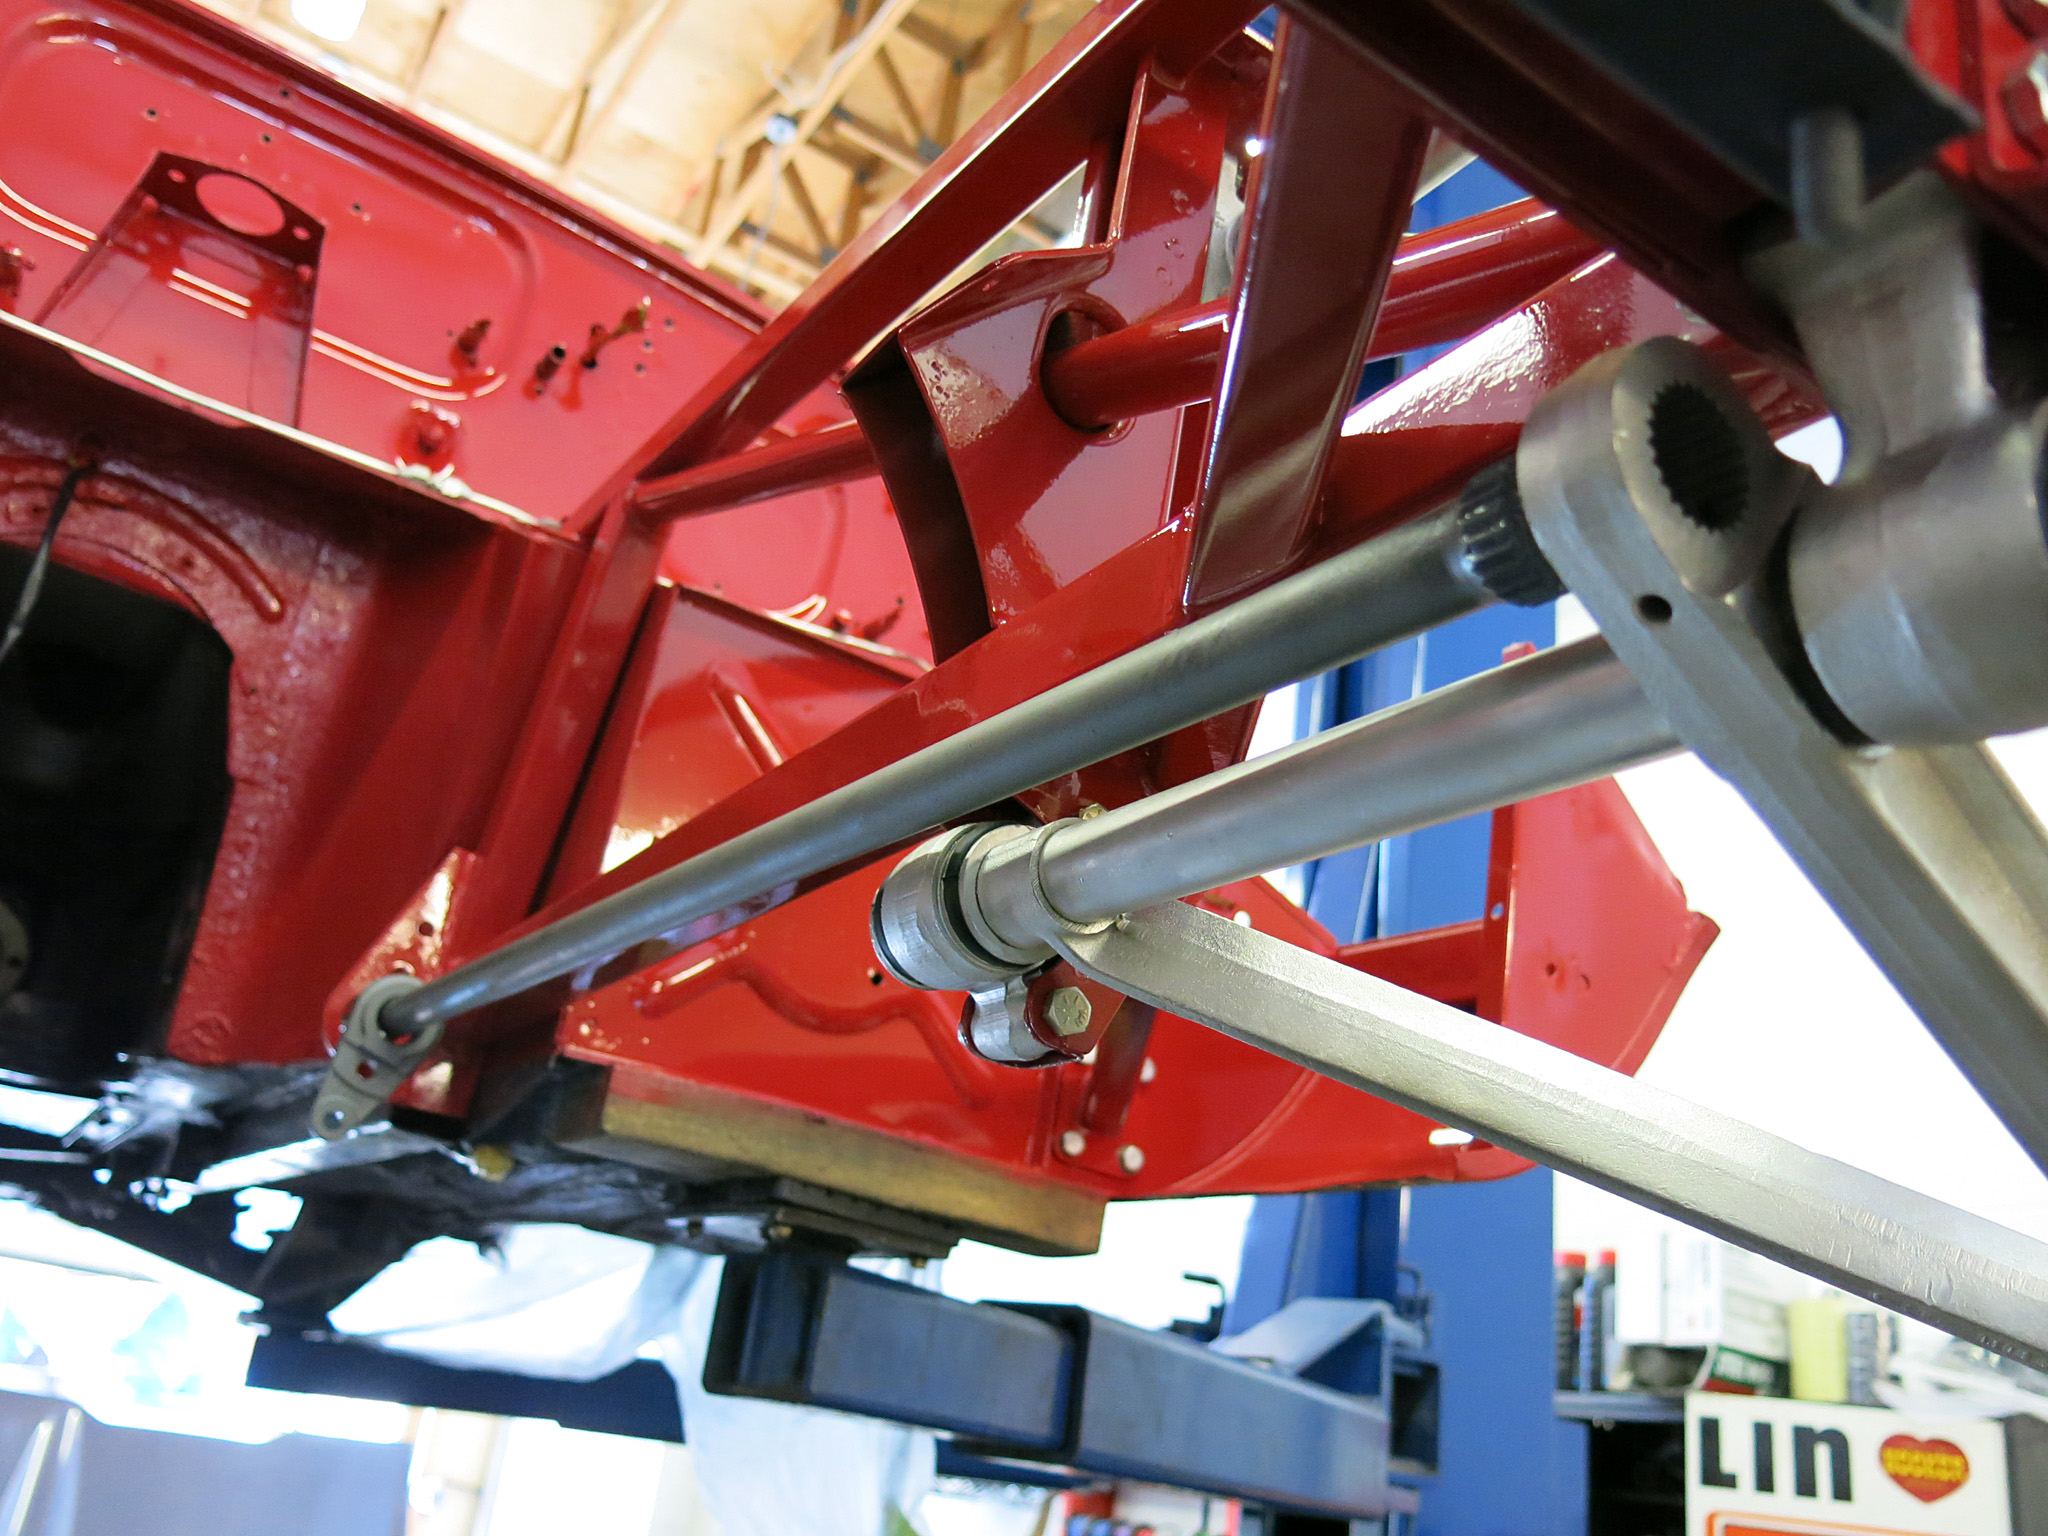 Install the lower control arms with the torsion bars in the correct factory fit. We slid the torsion bar receiving bracket into the middle of the bar, then pushed the torsion bar into the lower control arm and finally pushed the bracket into place.